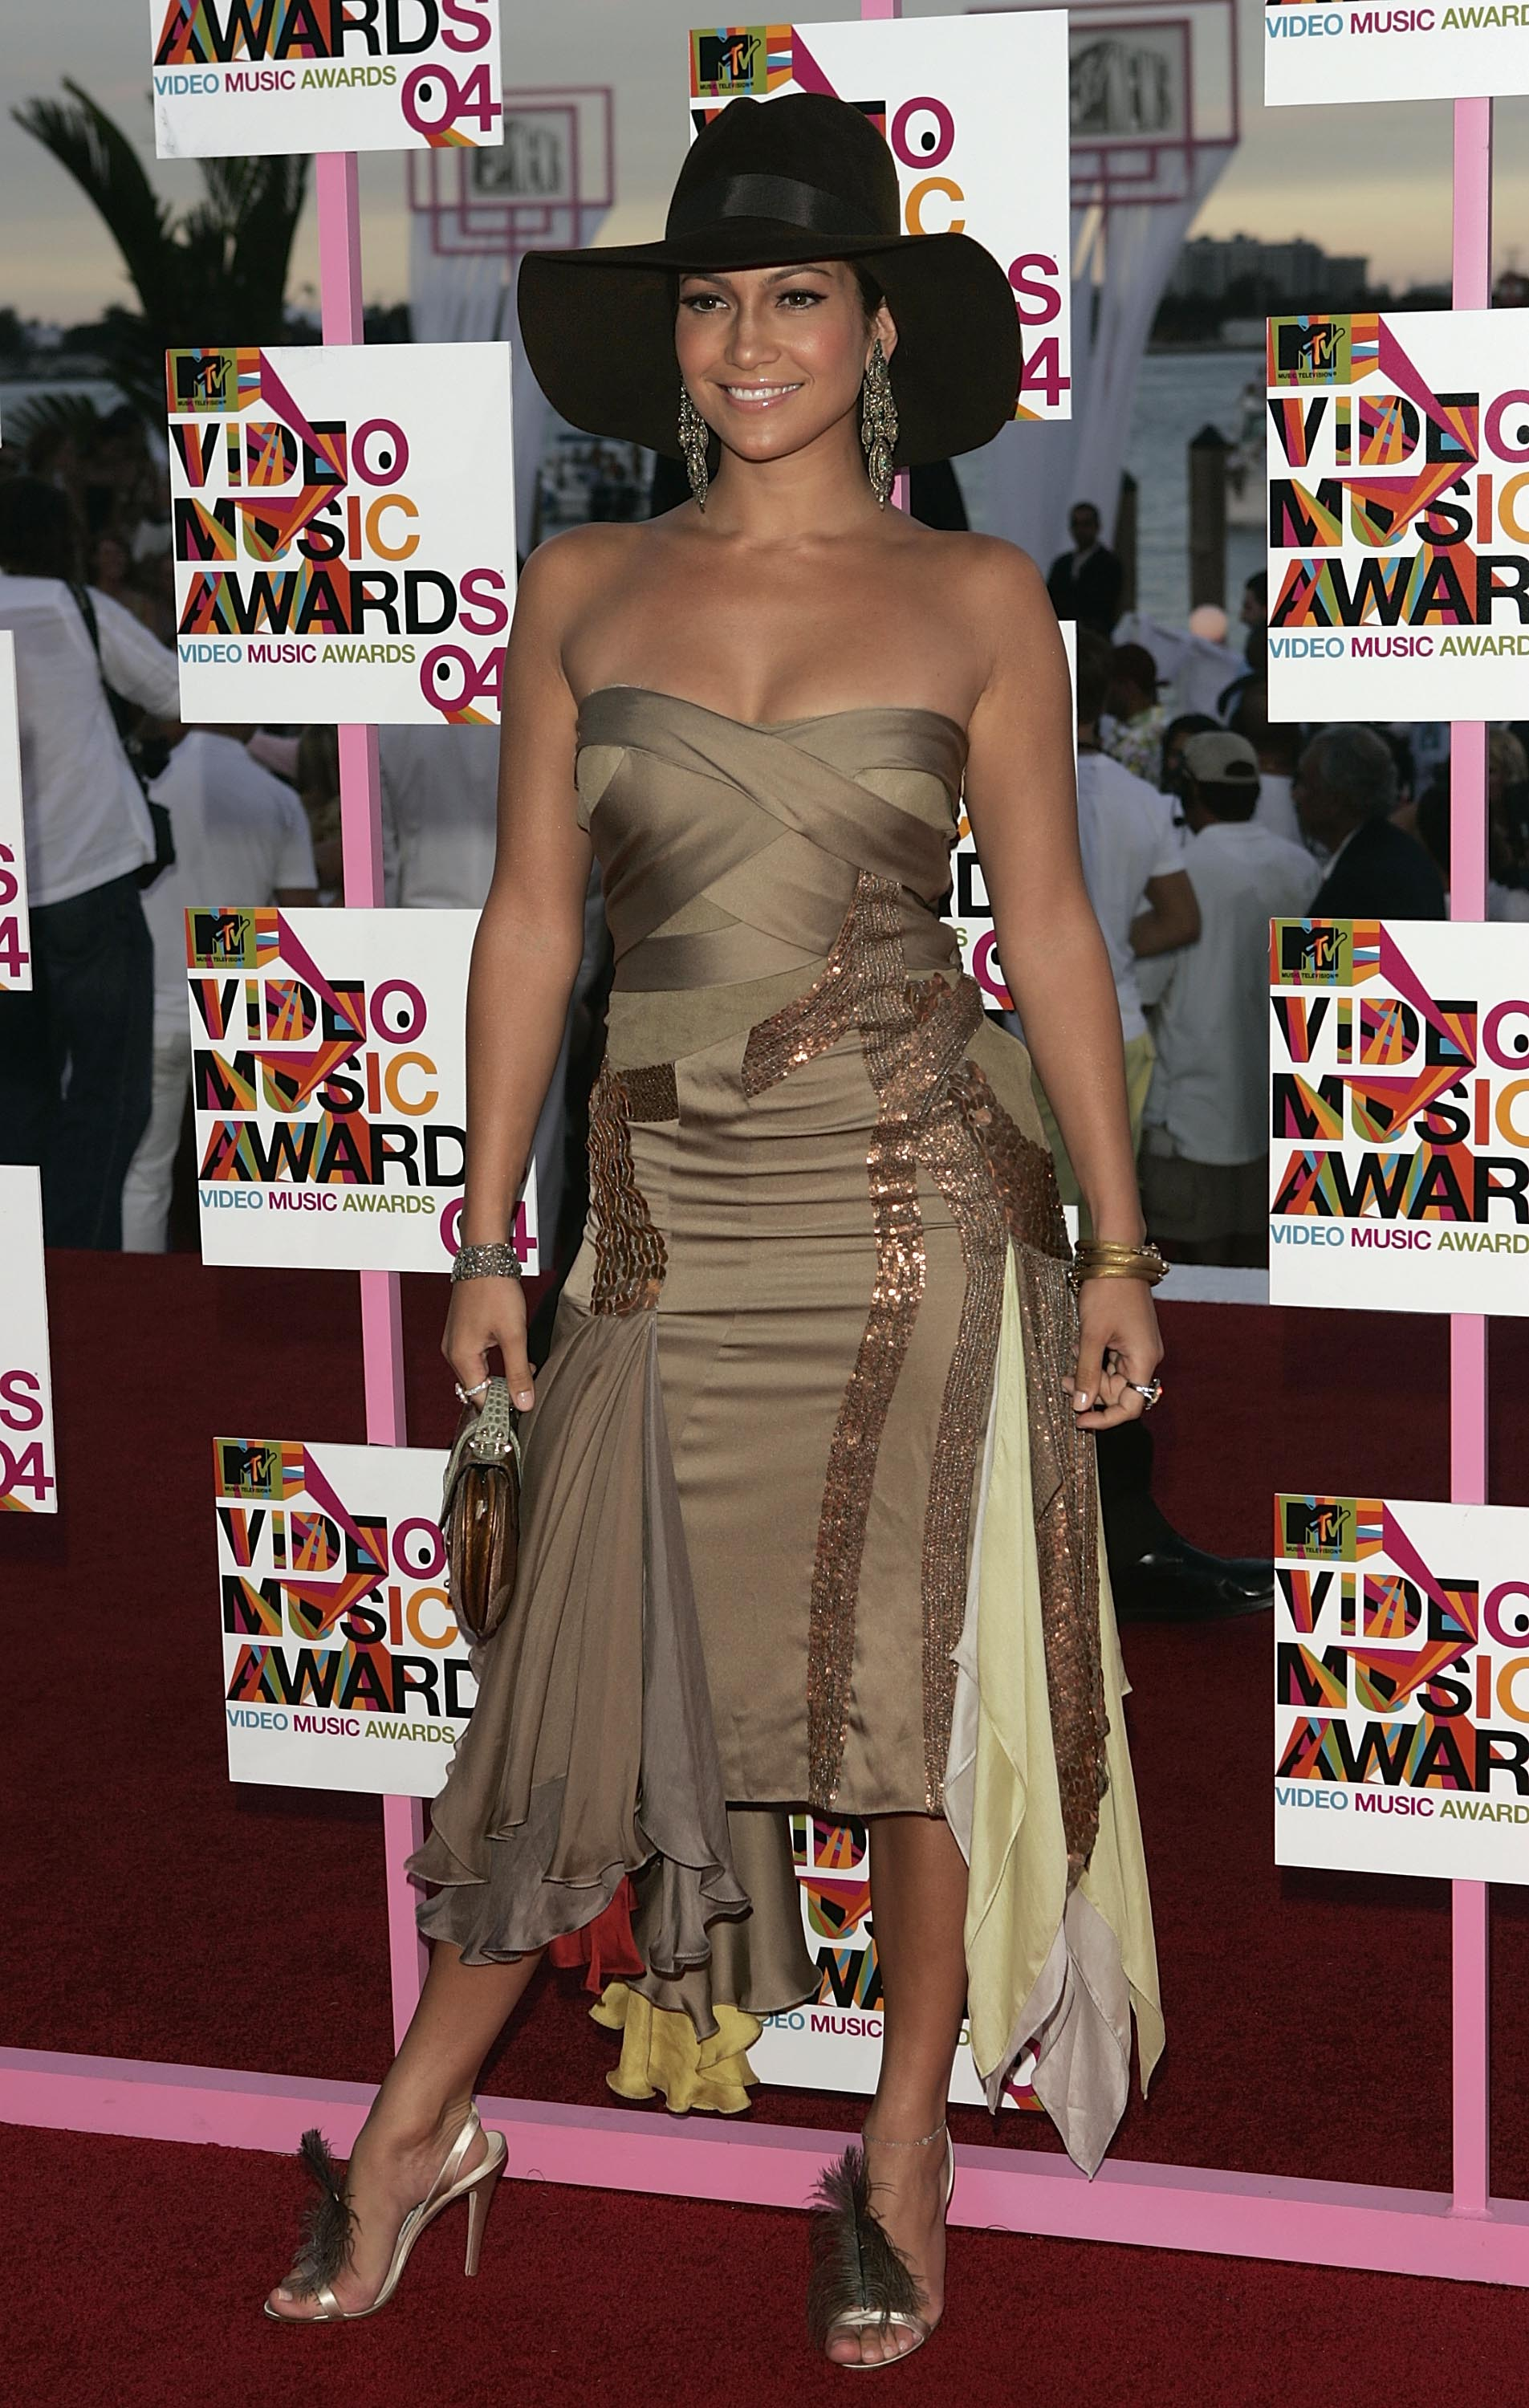 Jennifer Lopez's top 10 most questionable red carpet looks of all time [GALLERY]